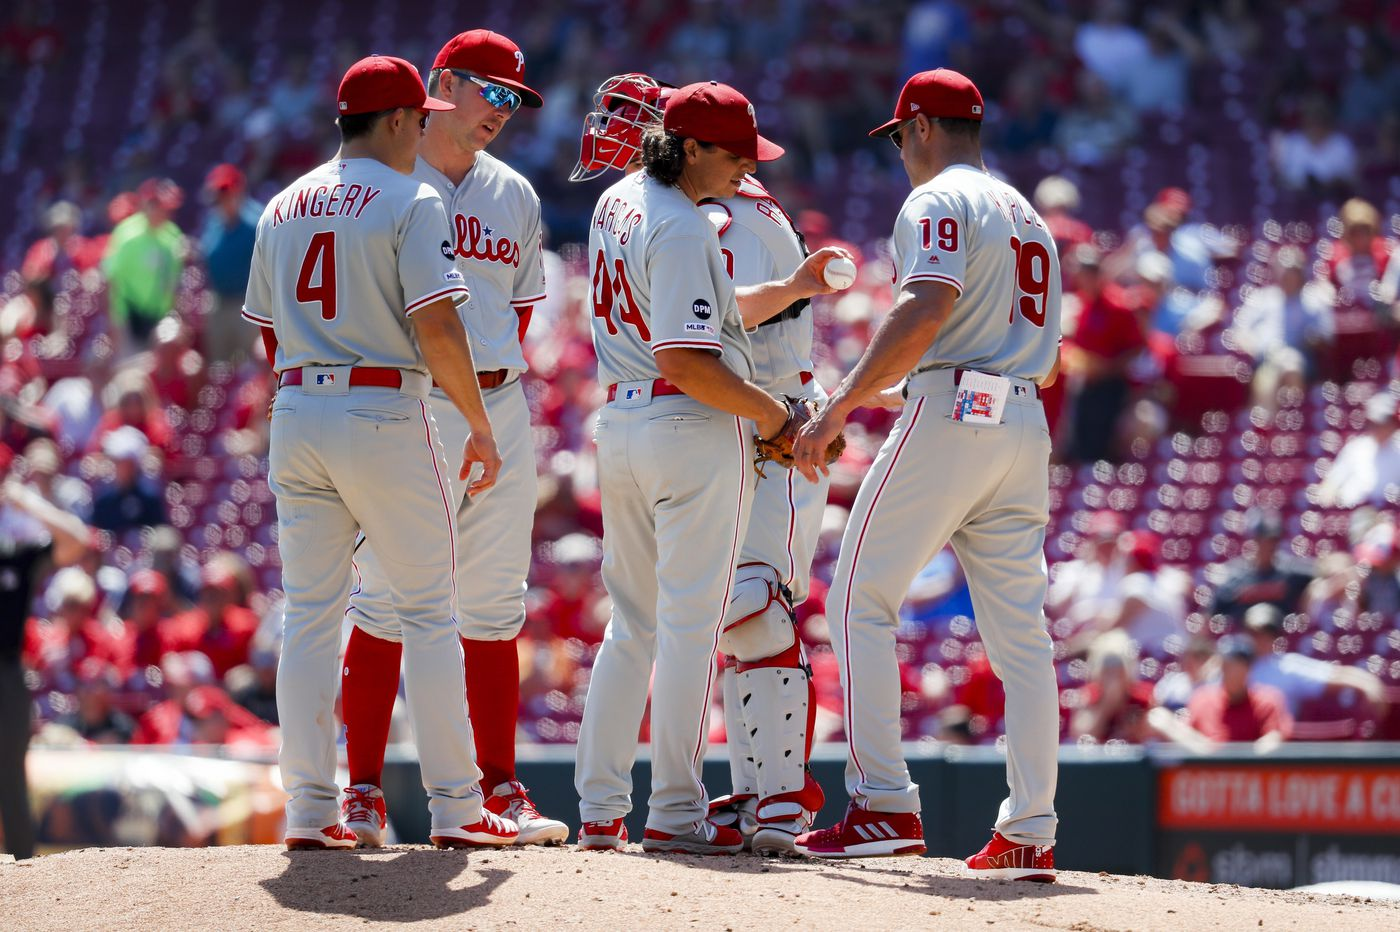 Phillies suffer 'frustrating' loss to Reds, 4-3, on 11th-inning home run